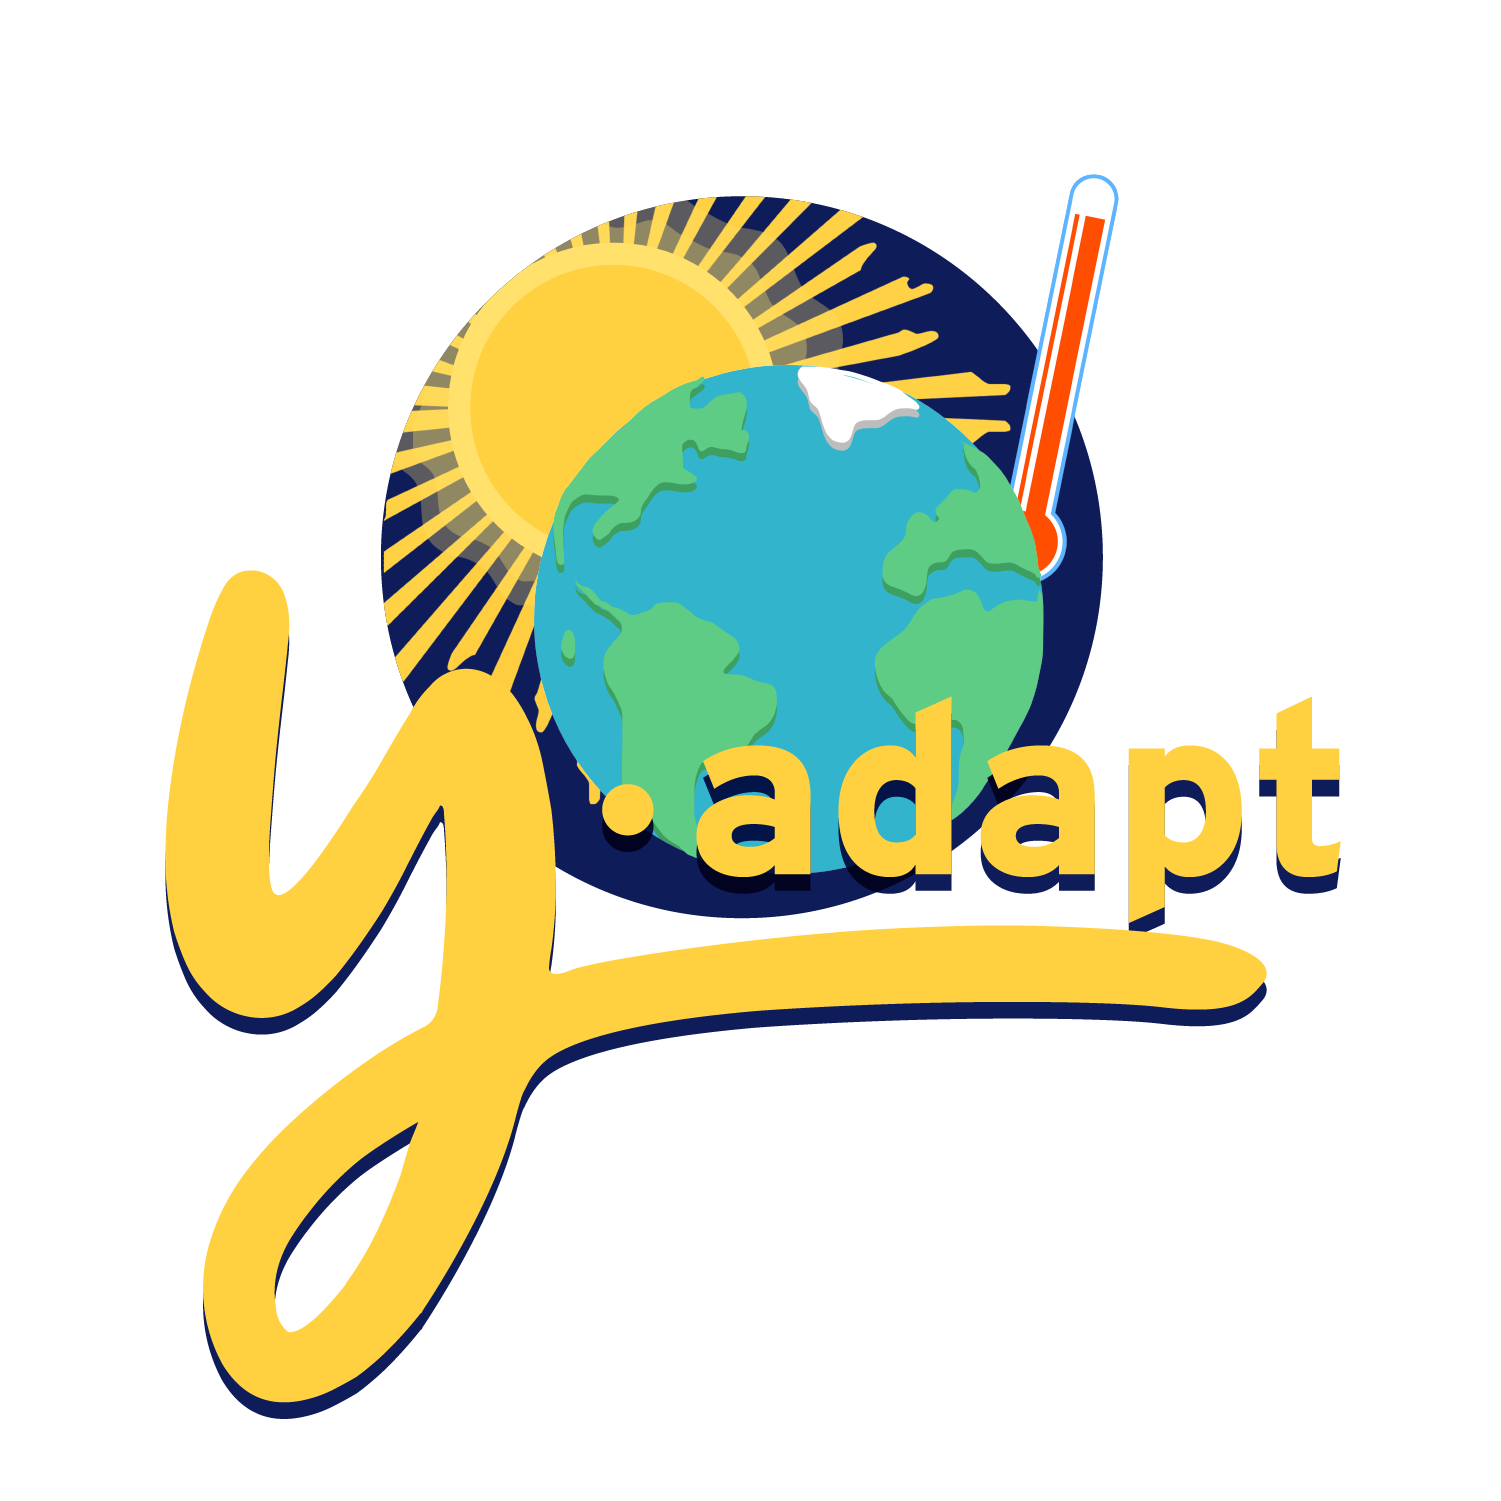 Thumbnail image for 'Y-Adapt' project